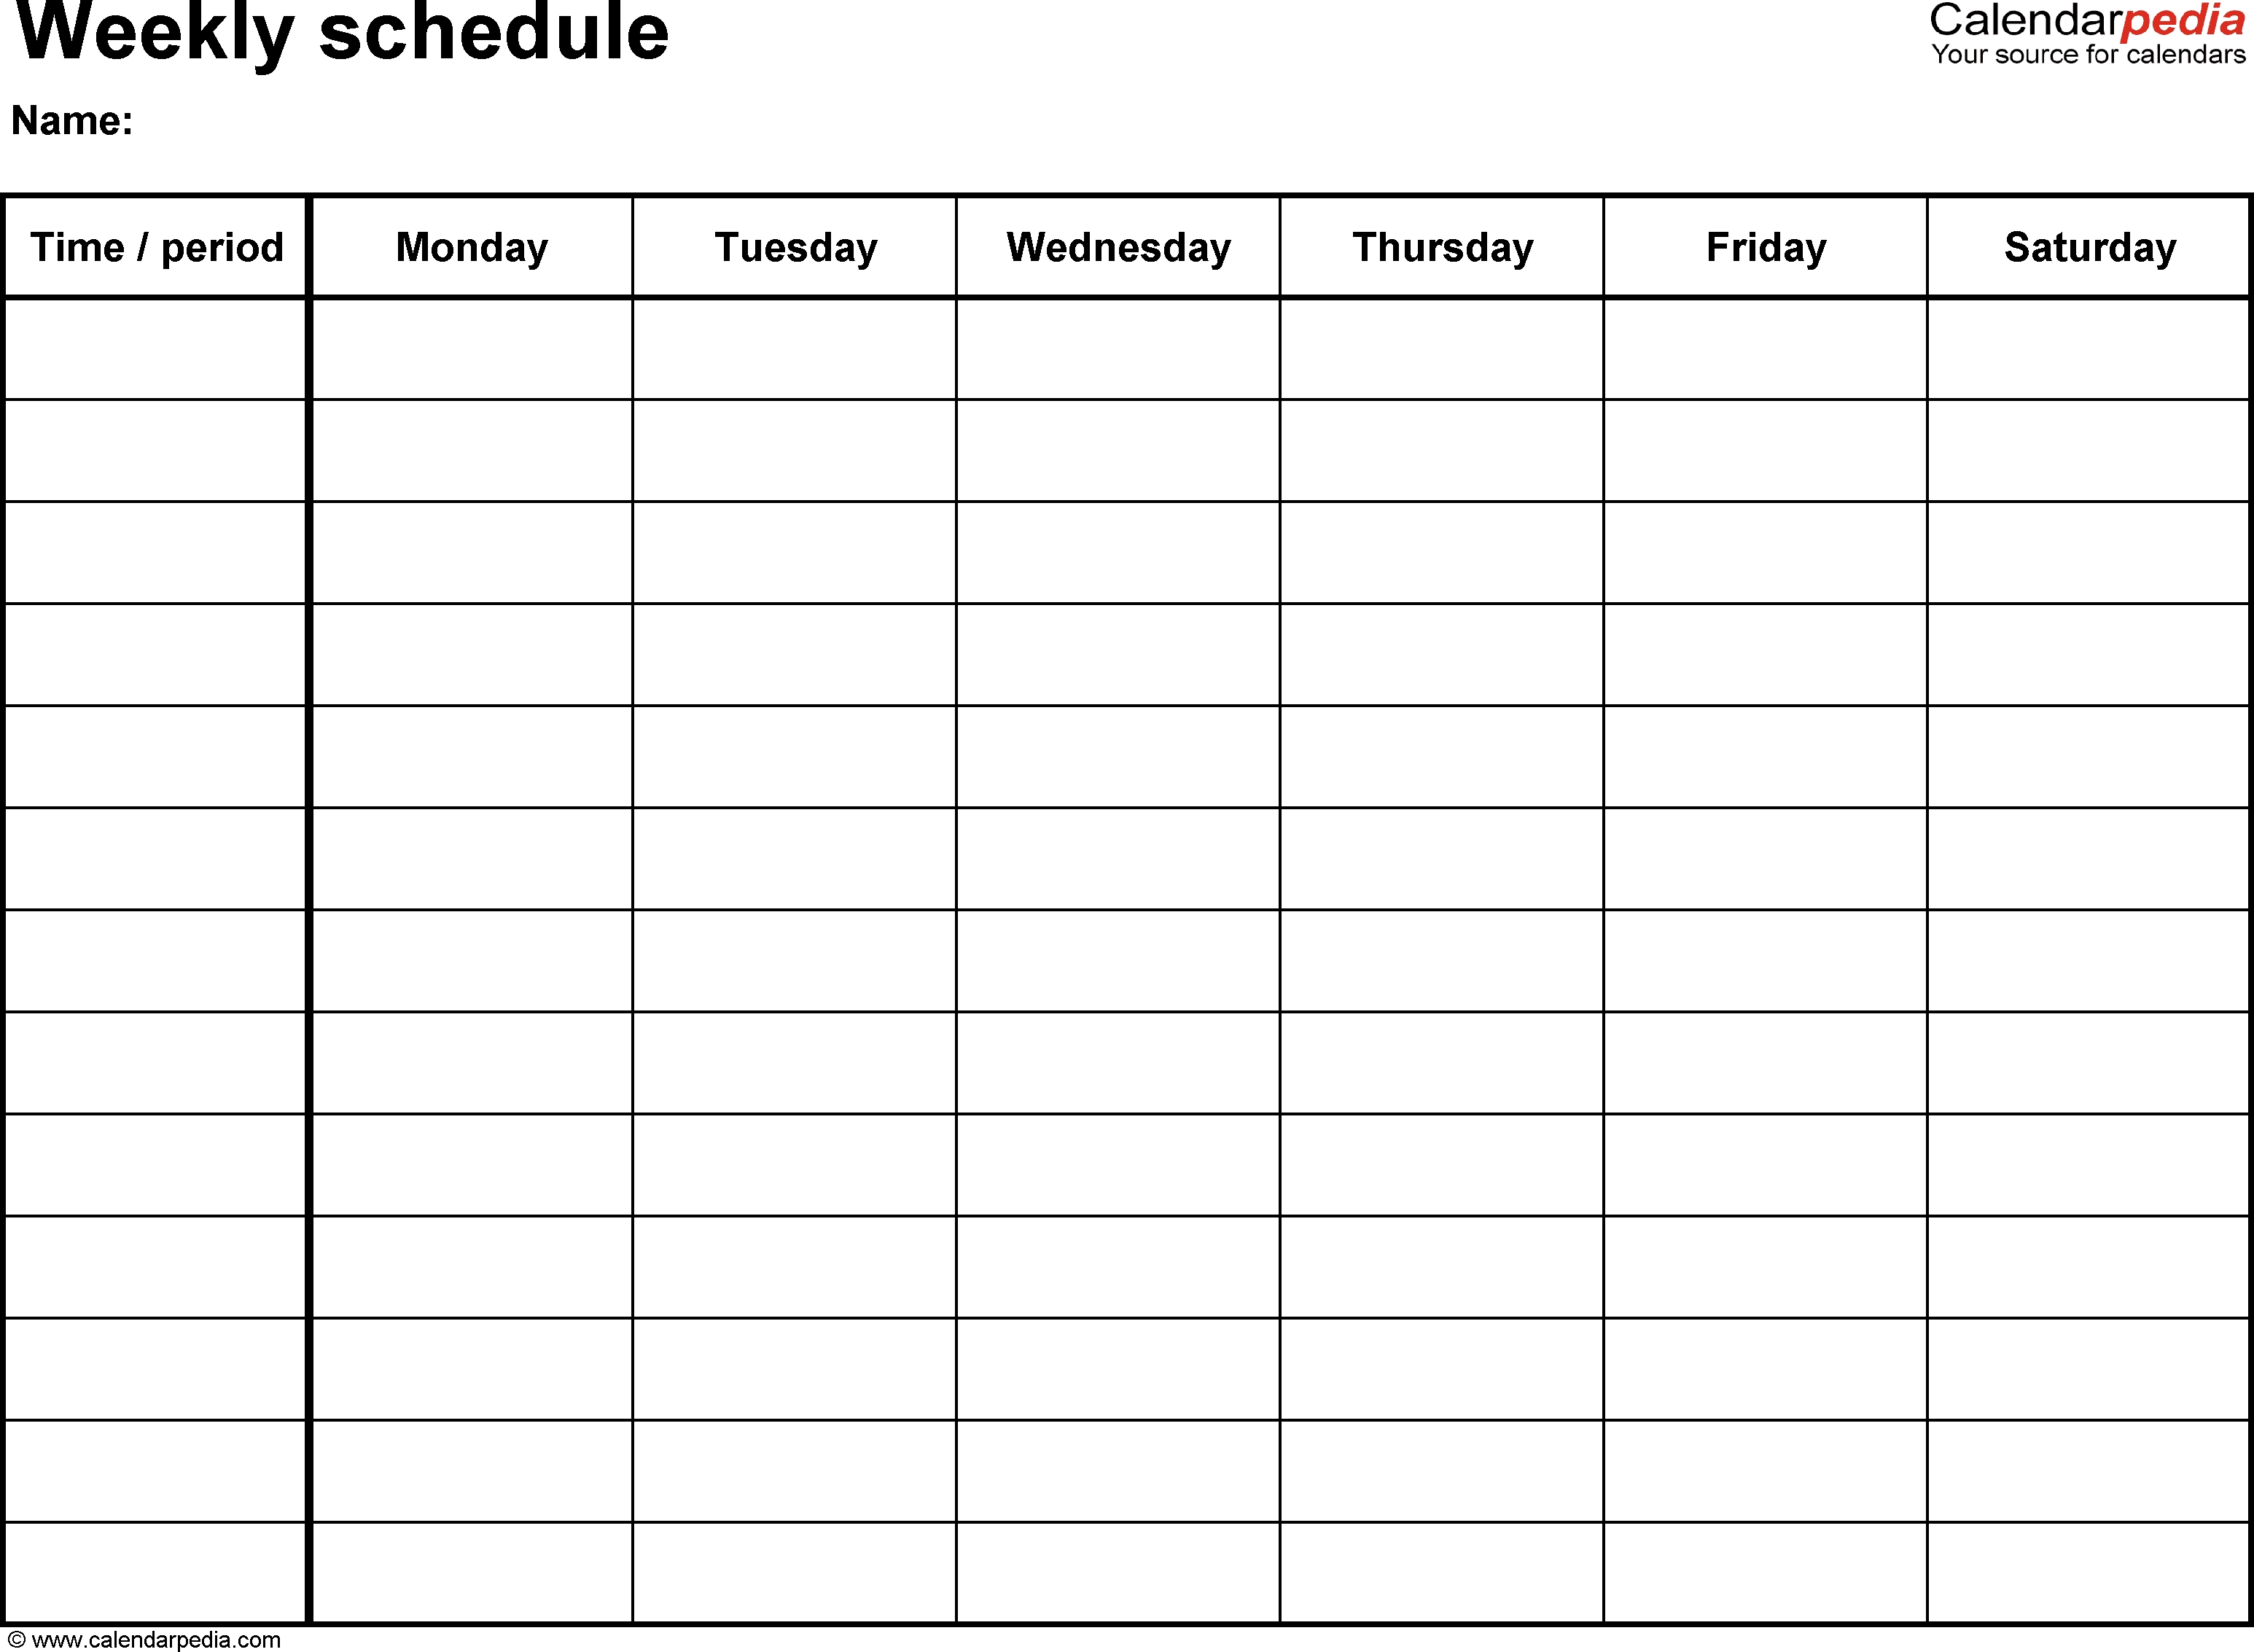 Free Weekly Schedule Templates For Word - 18 Templates intended for 1 Week Blank Calendar Template